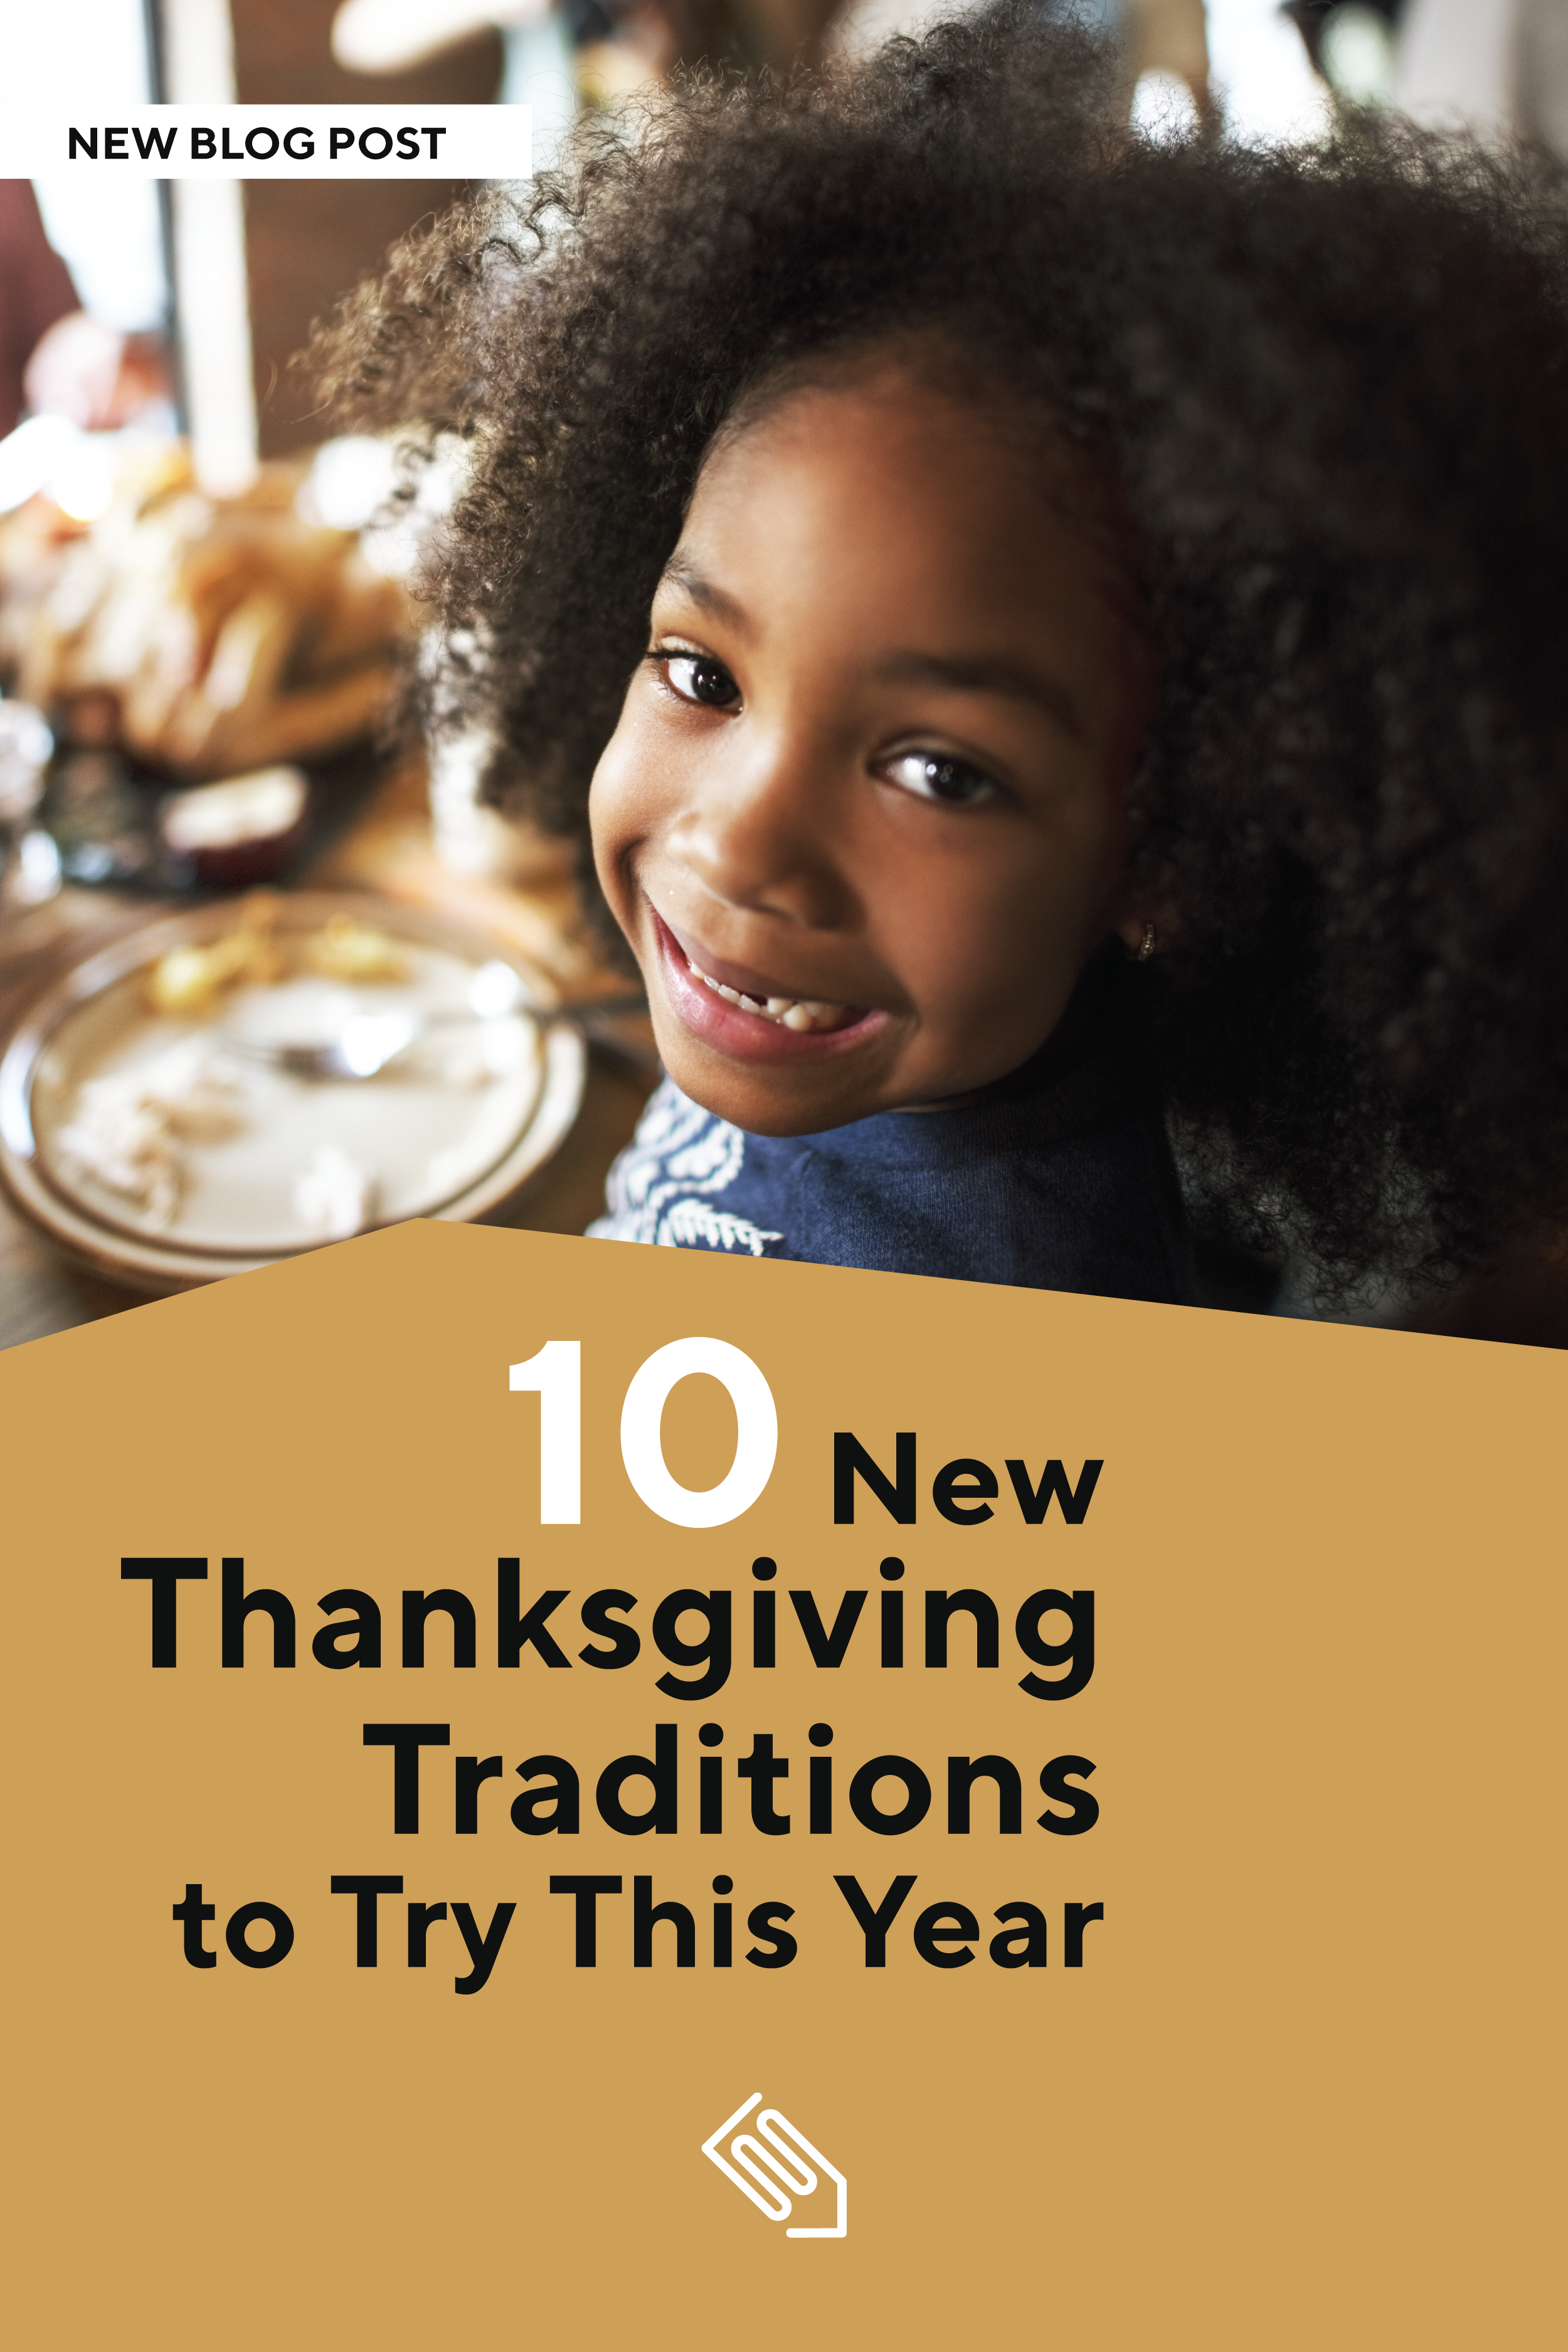 10 New Thanksgiving Traditions To Try This Year